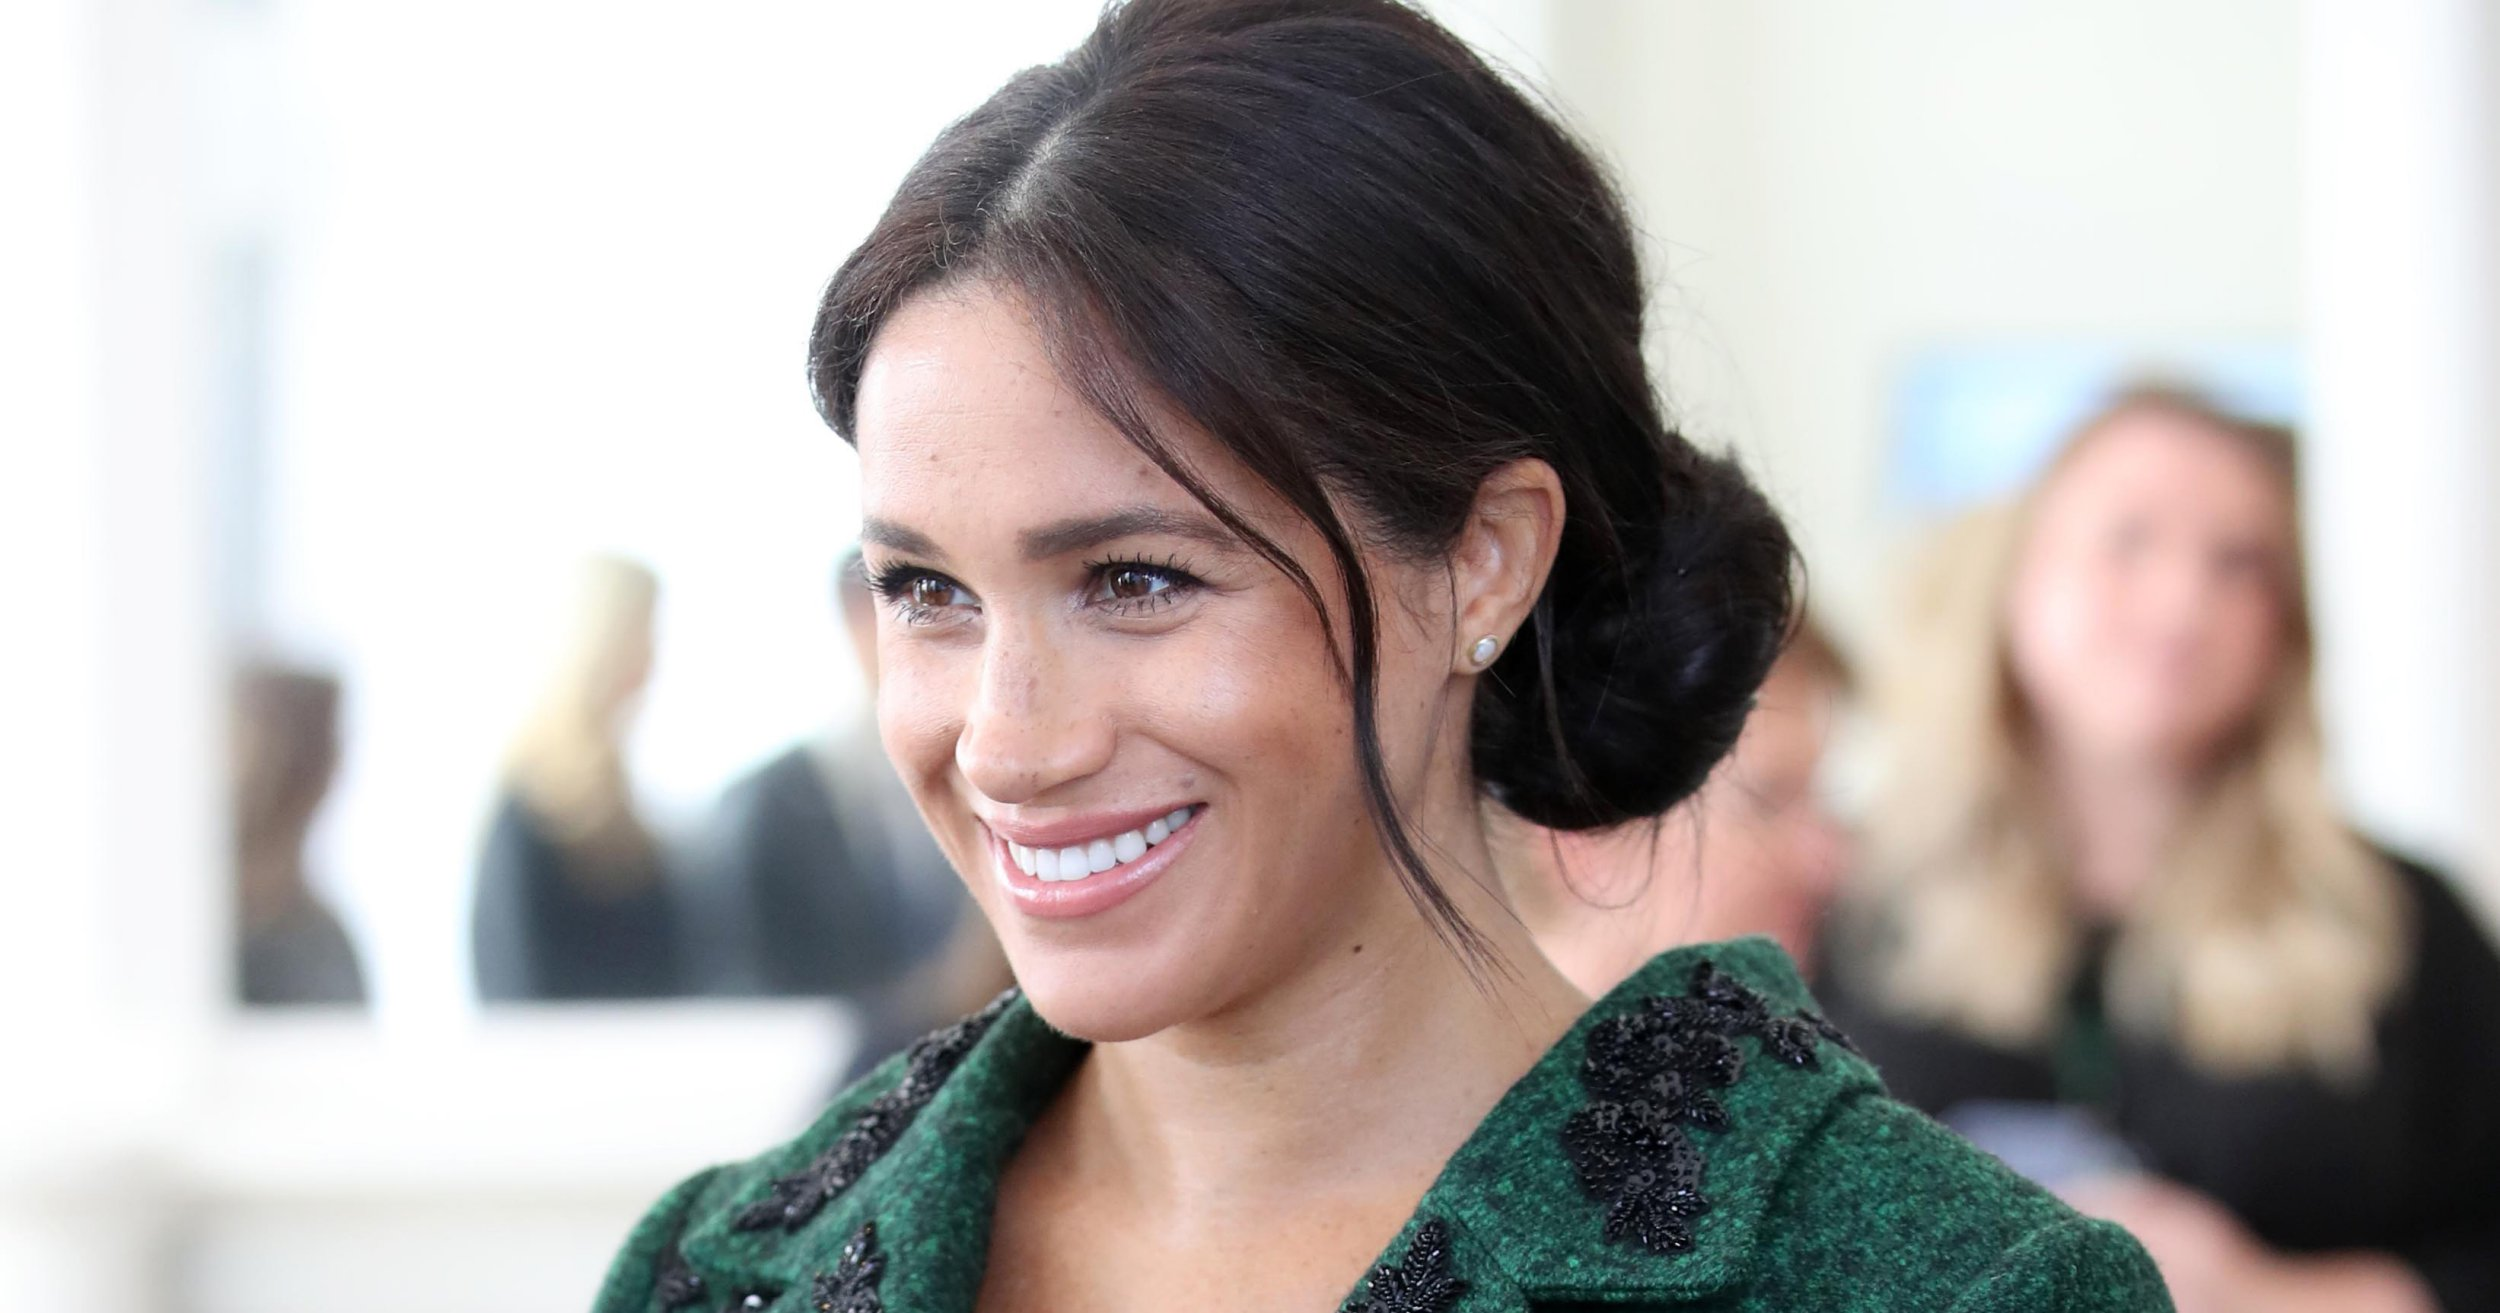 Meghan Markle 'nicknamed Me-Gain' by disgruntled Kensington Palace staff